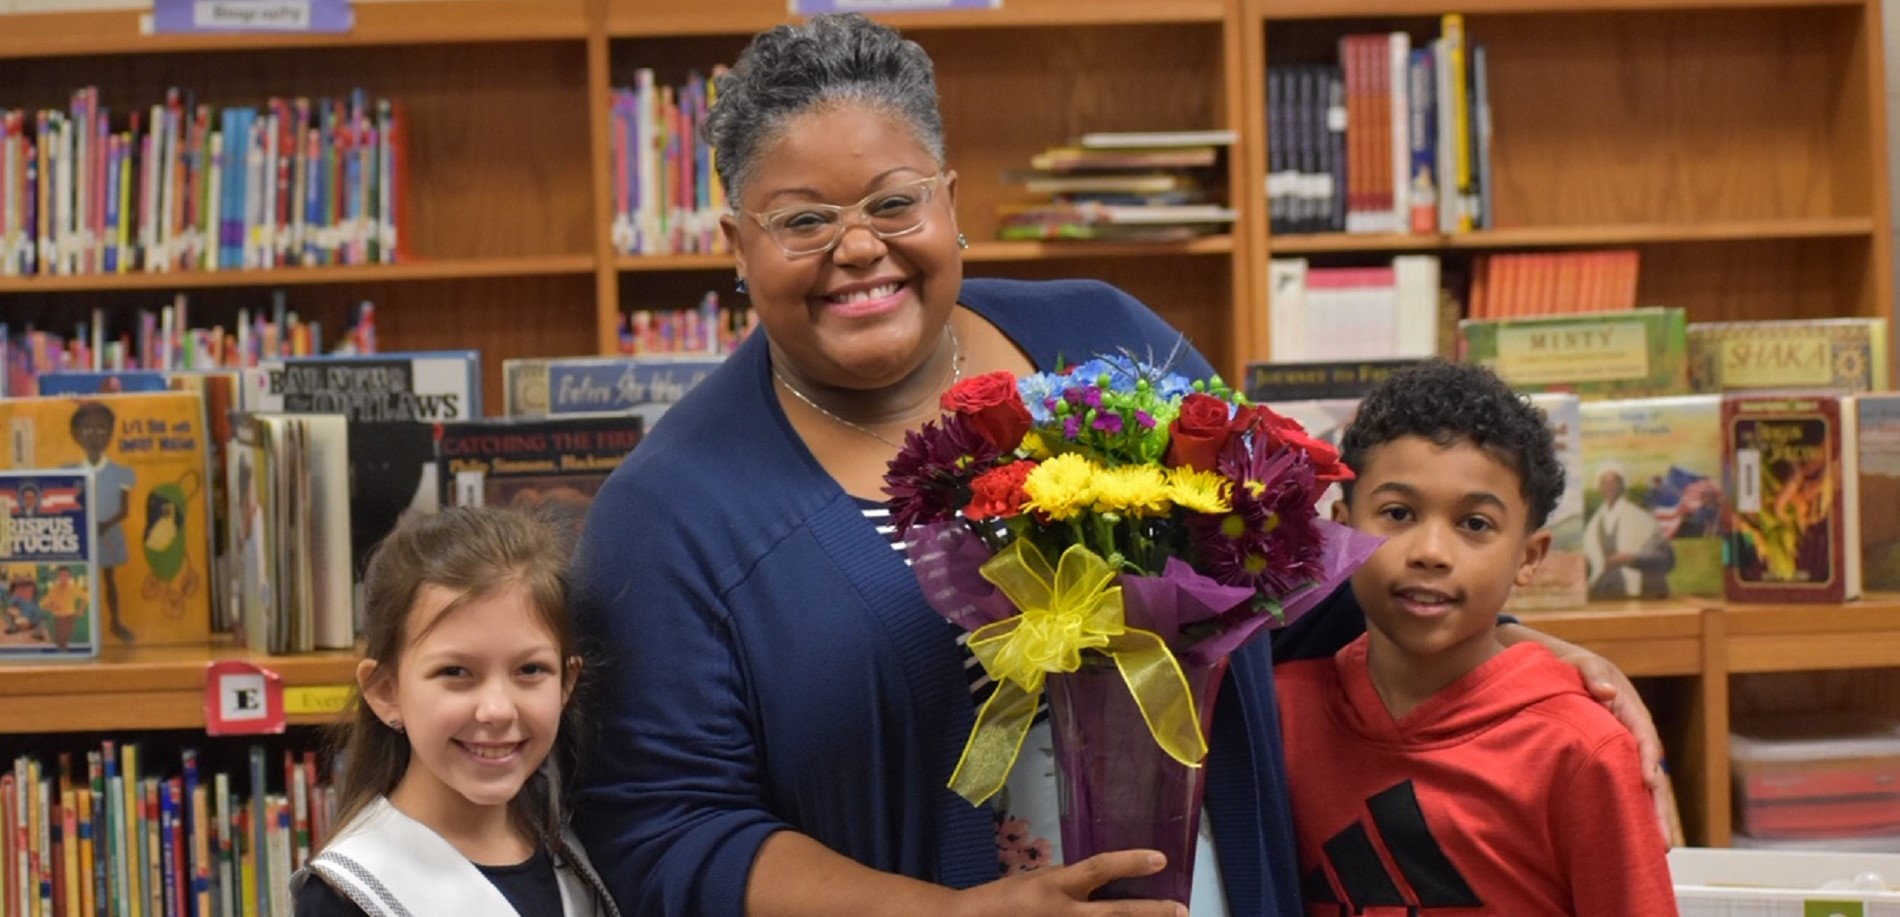 Student PTO Representatives present flowers to Ms. Roopchan